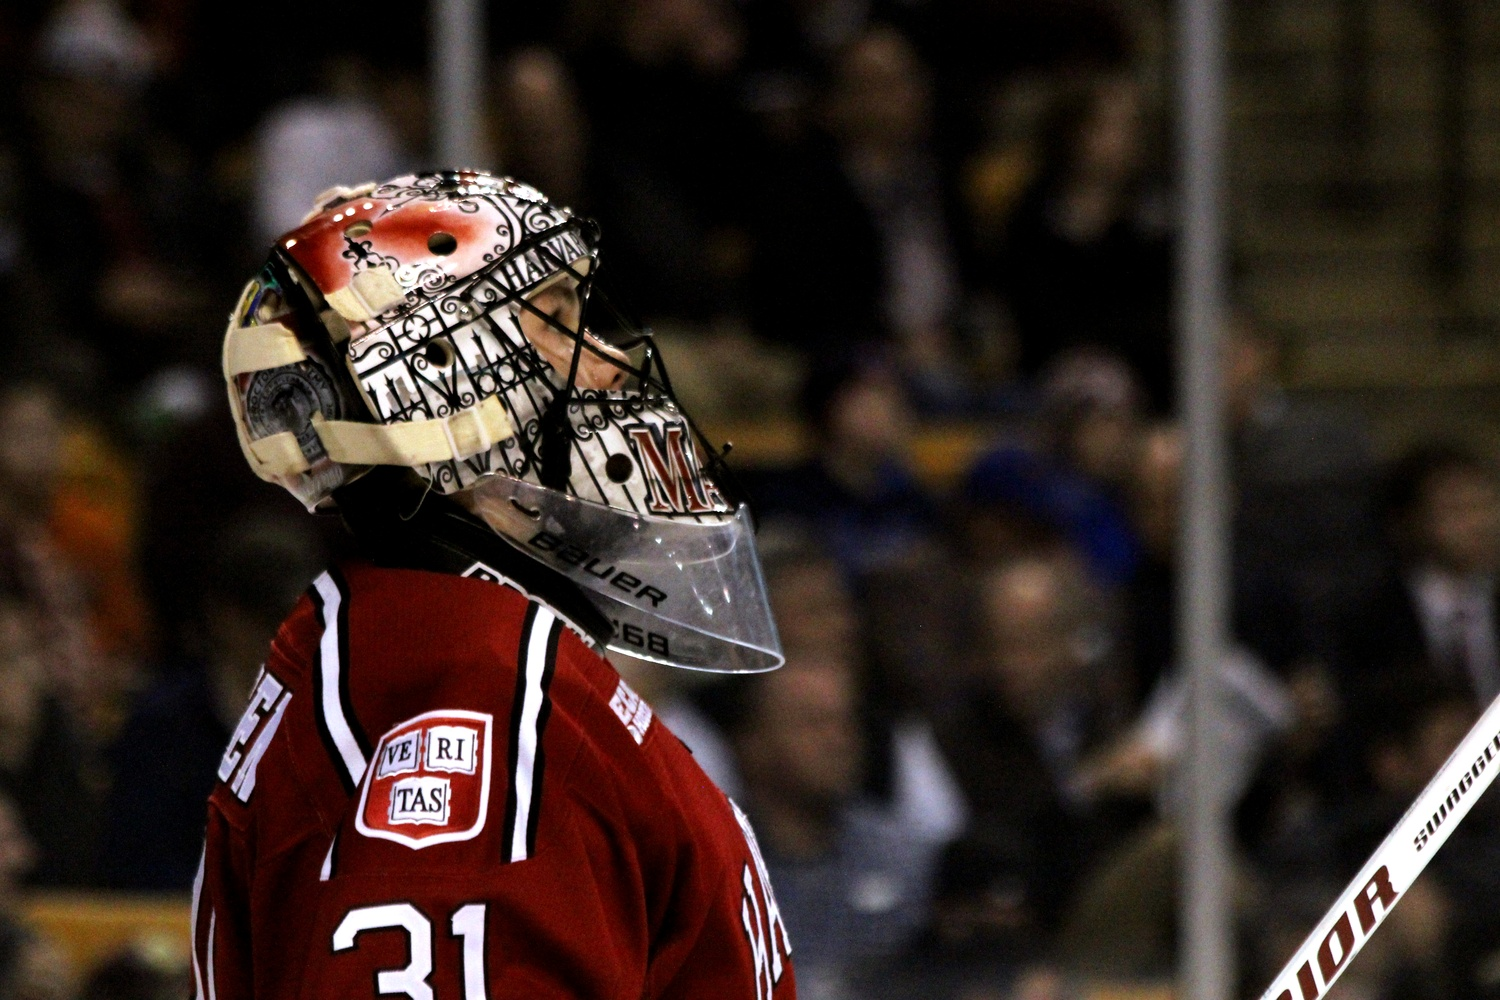 Sophomore goaltender Merrick Madsen stopped 30 of the 33 shots he faced, but it was ultimately not enough as Harvard fell to BC, 3-2, in a Beanpot semifinal.